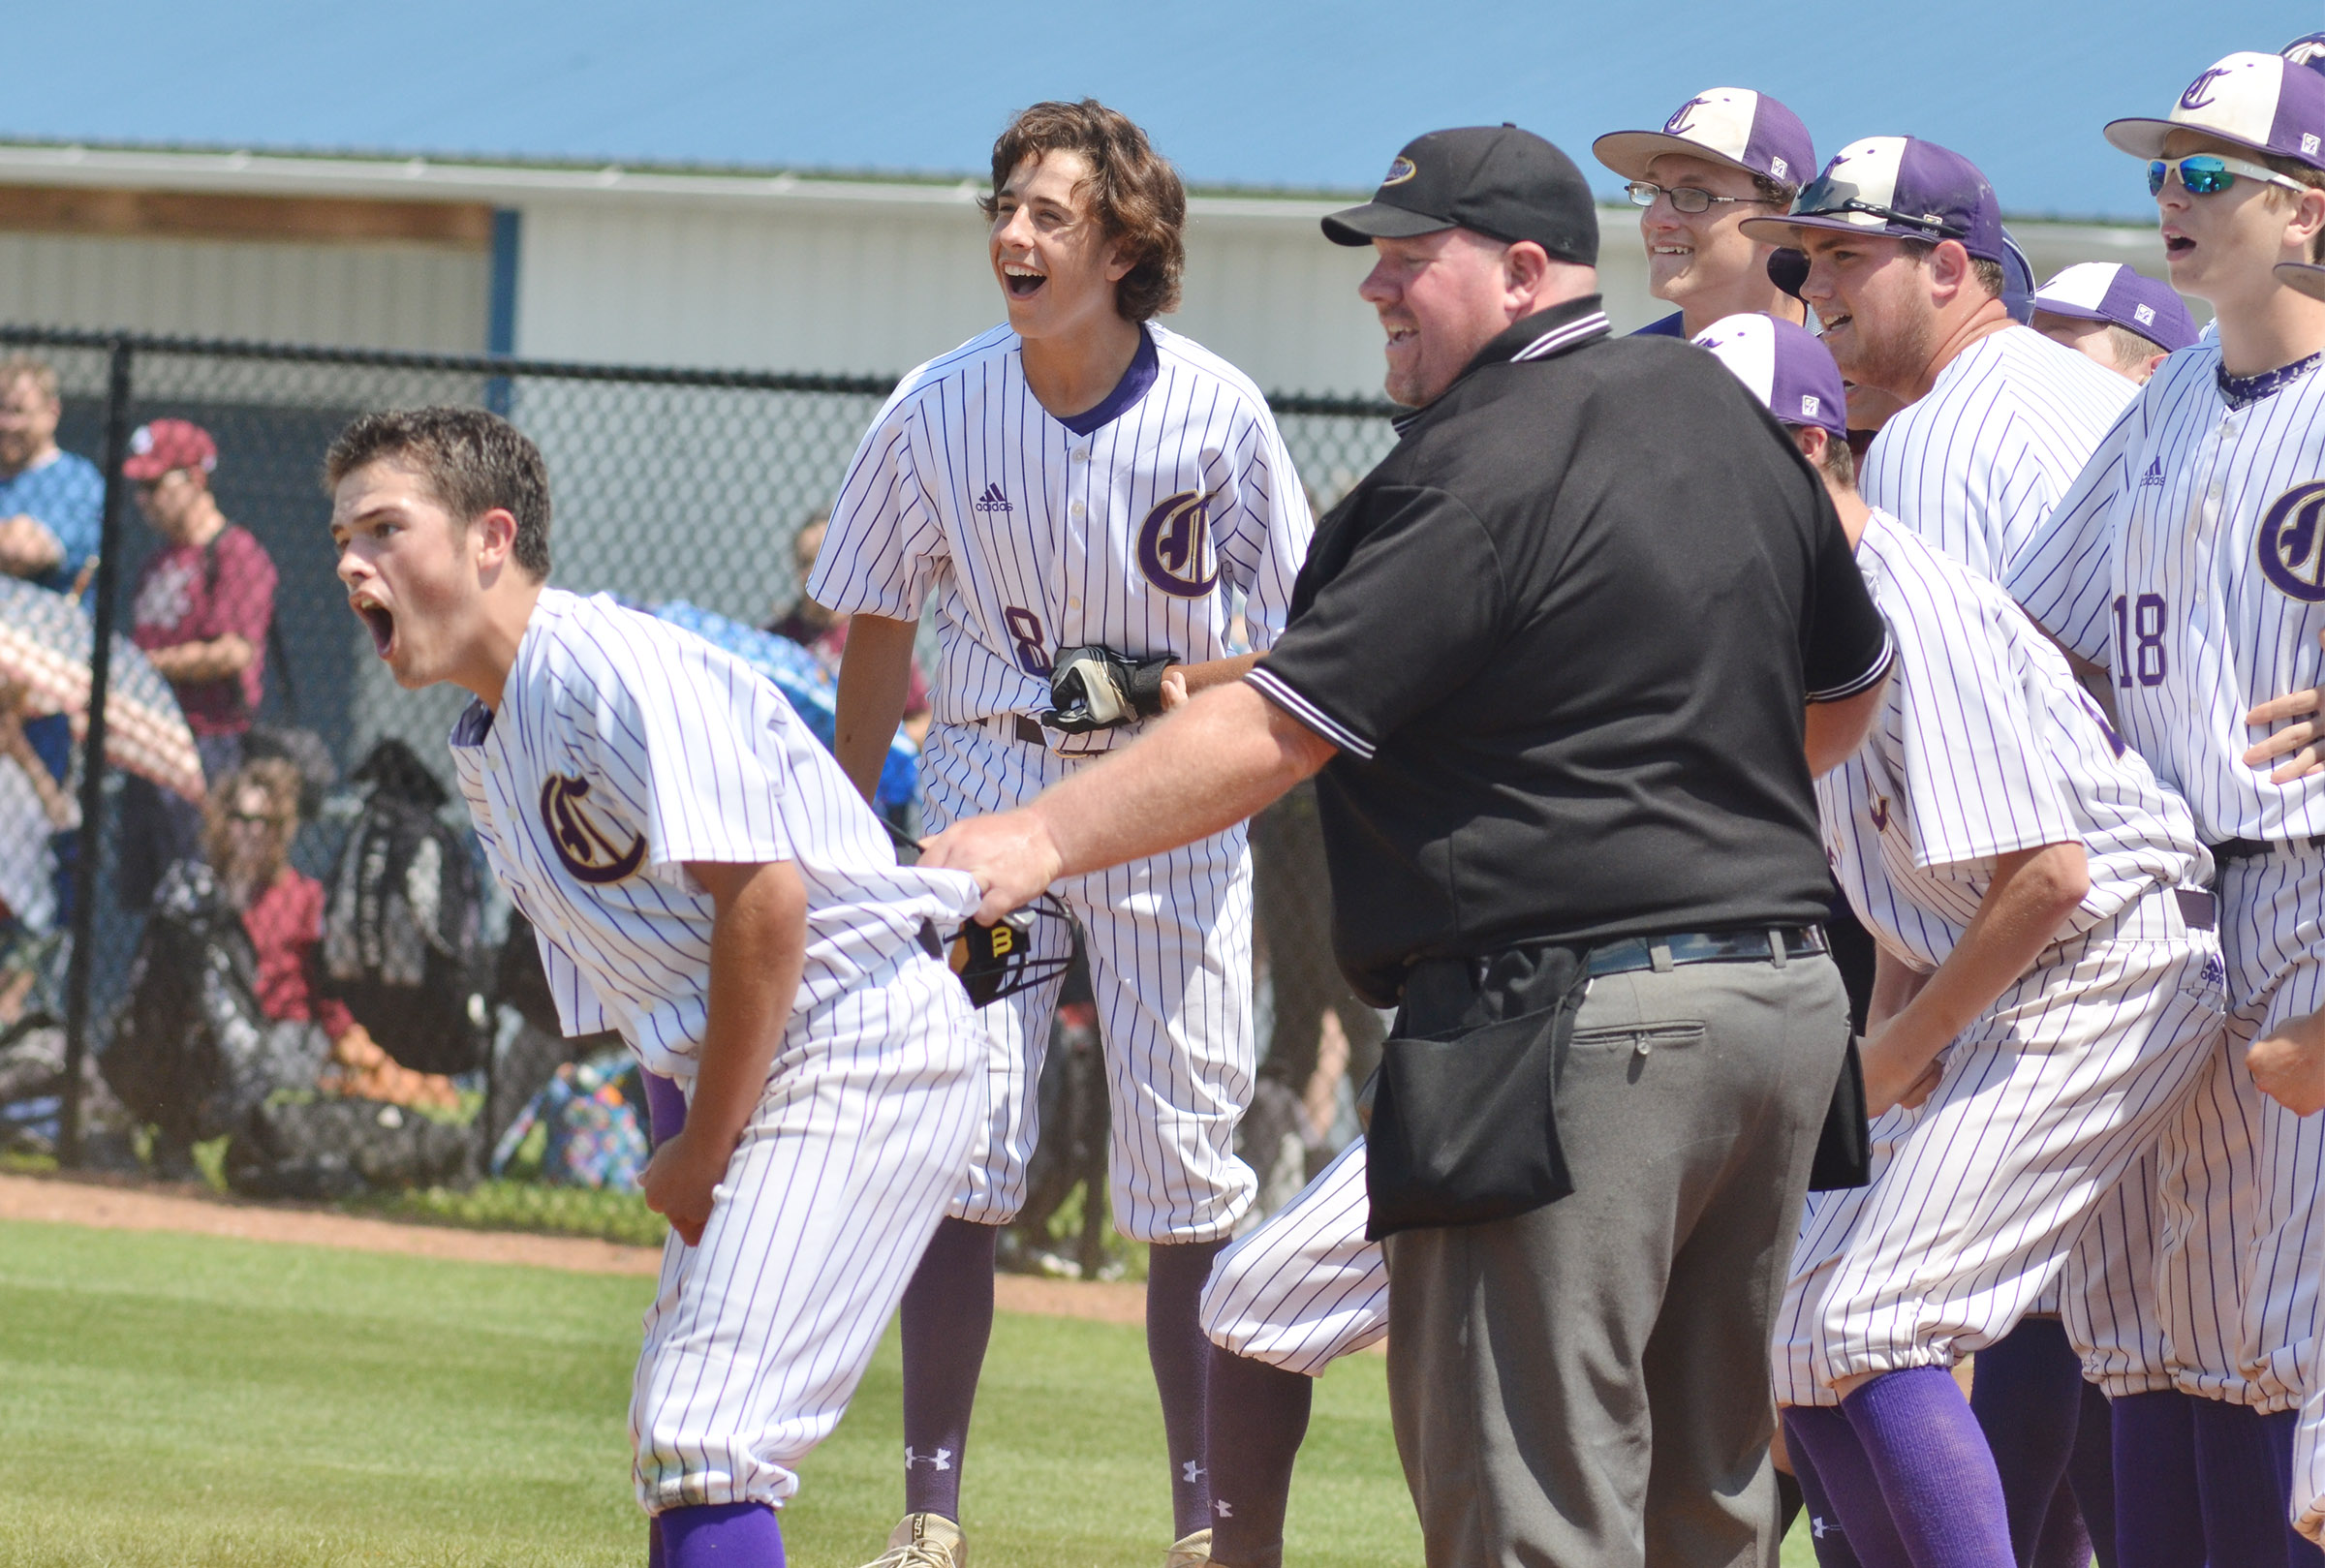 CHS baseball players greet sophomore Treyce Mattingly as he scores after hitting a three-run homerun.